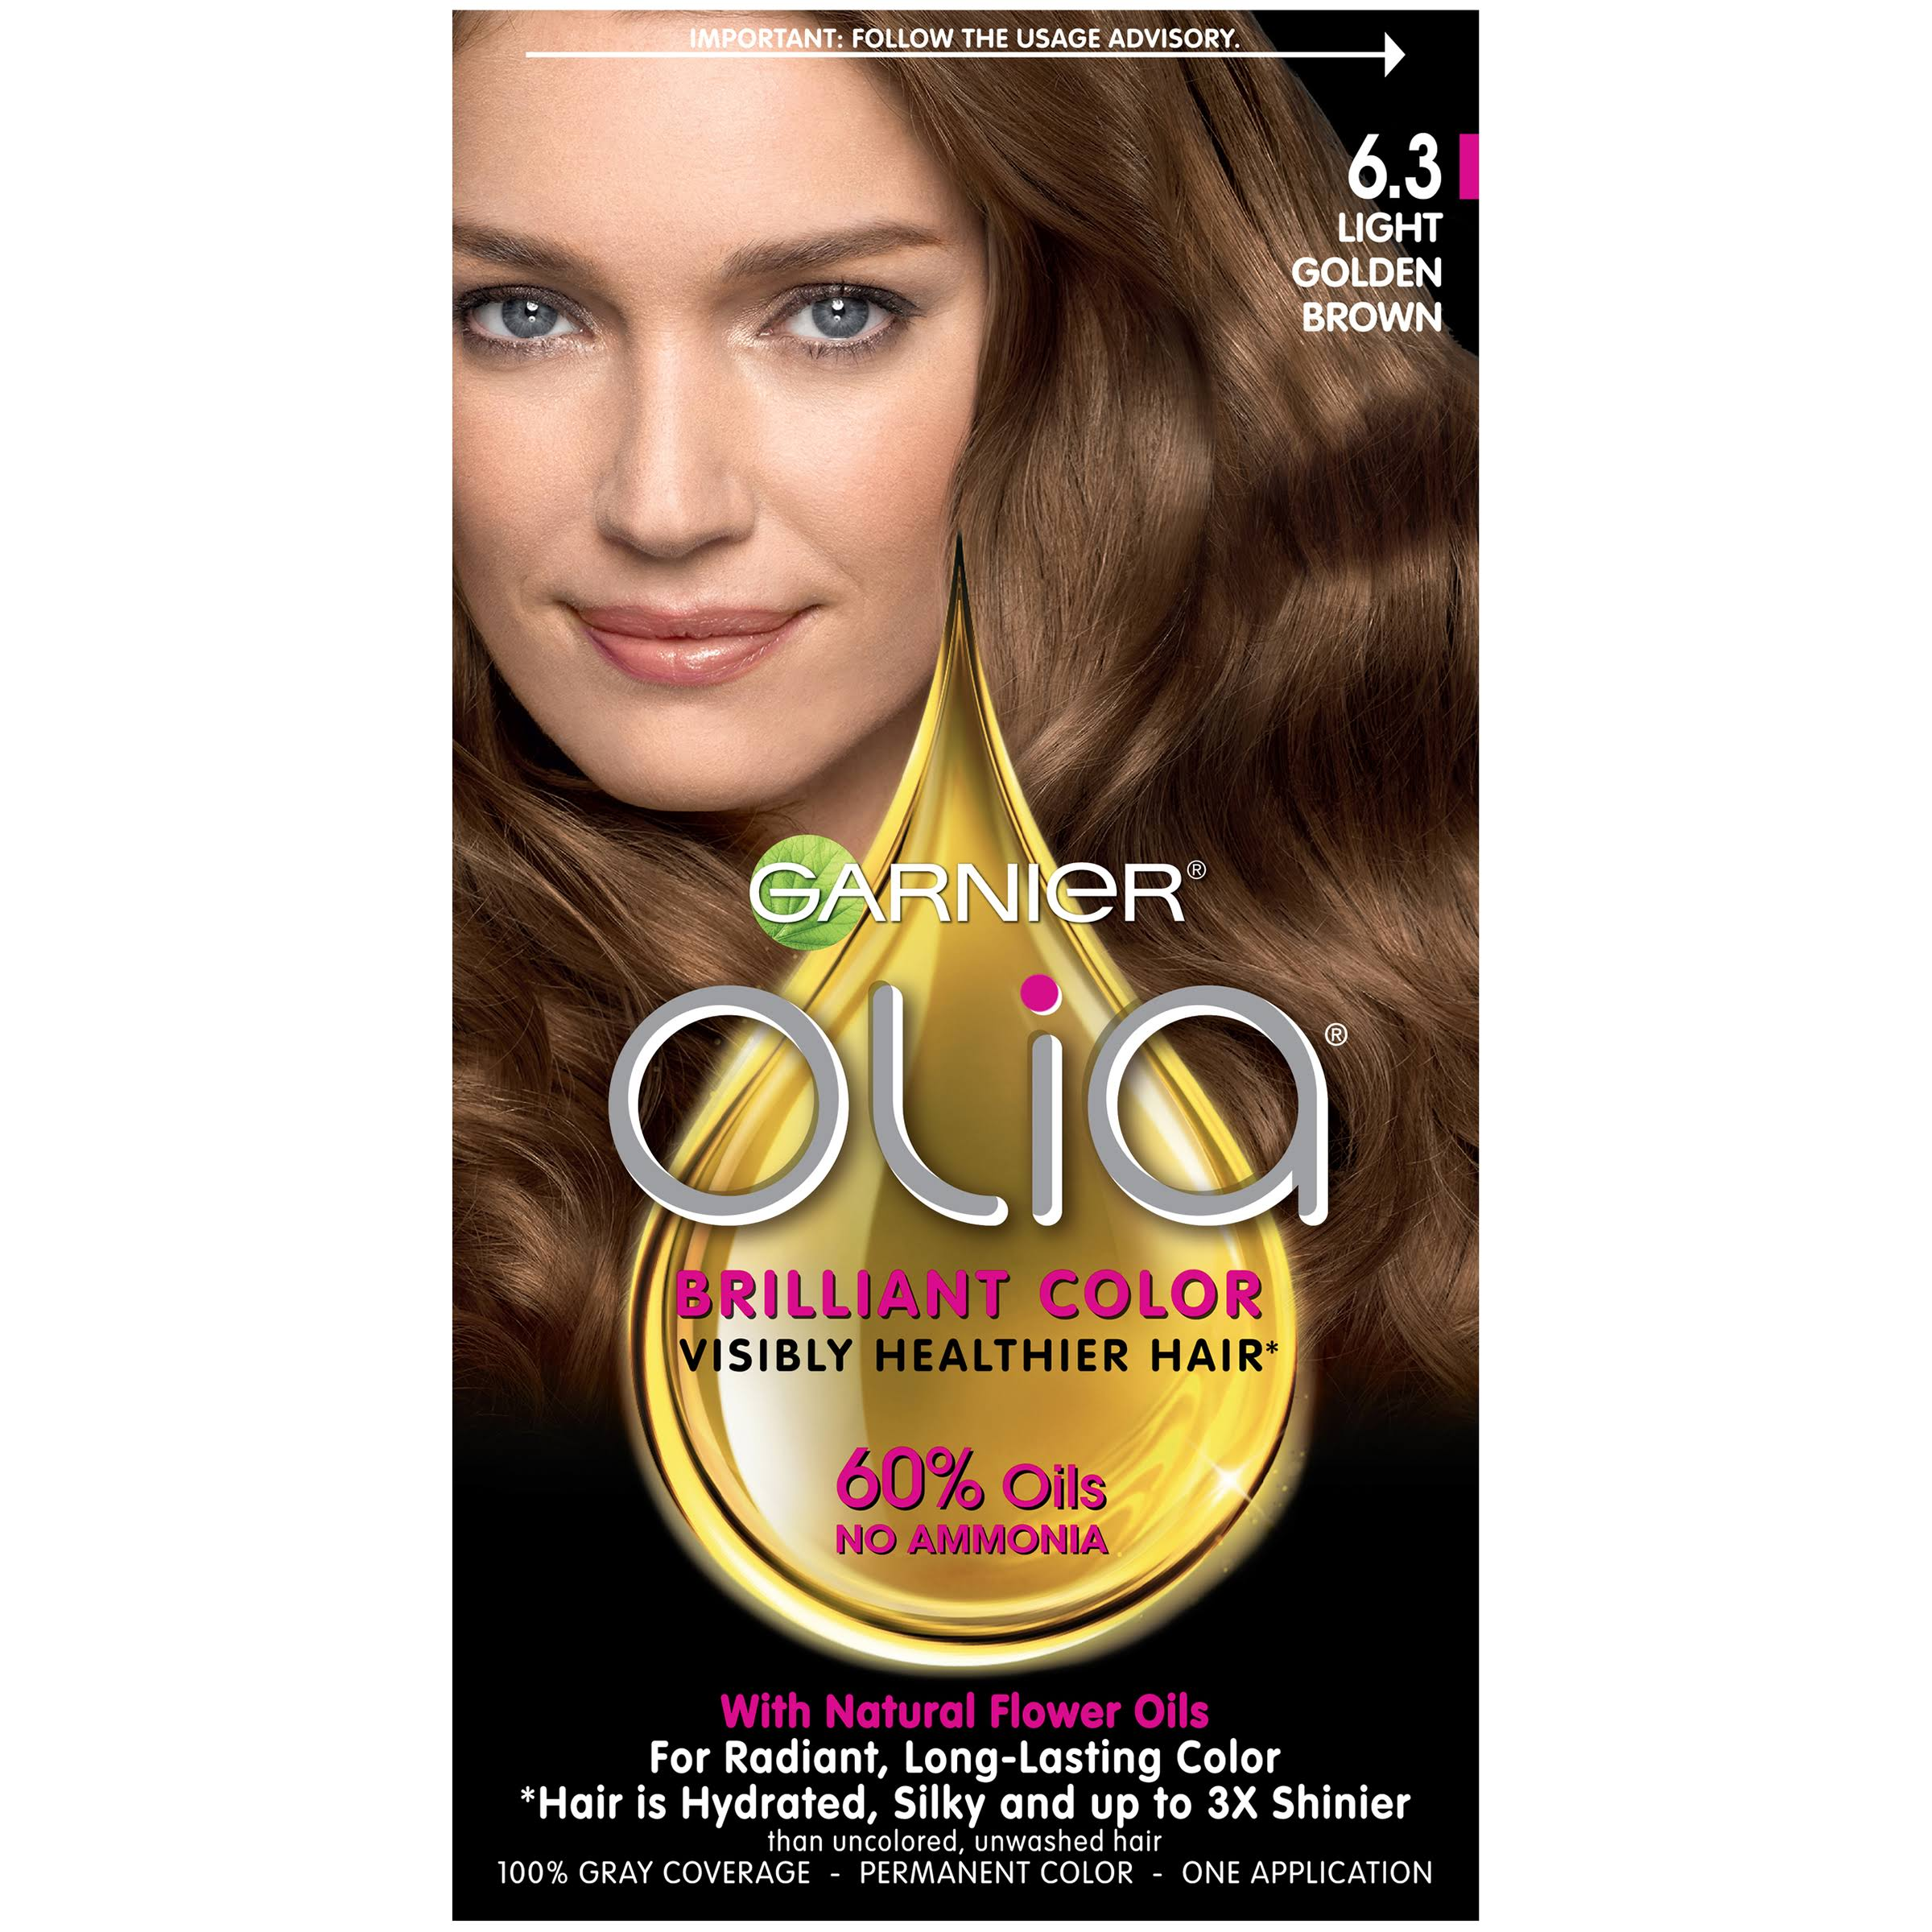 Olia Brilliant Color Permanent Color, Light Golden Brown 6.3